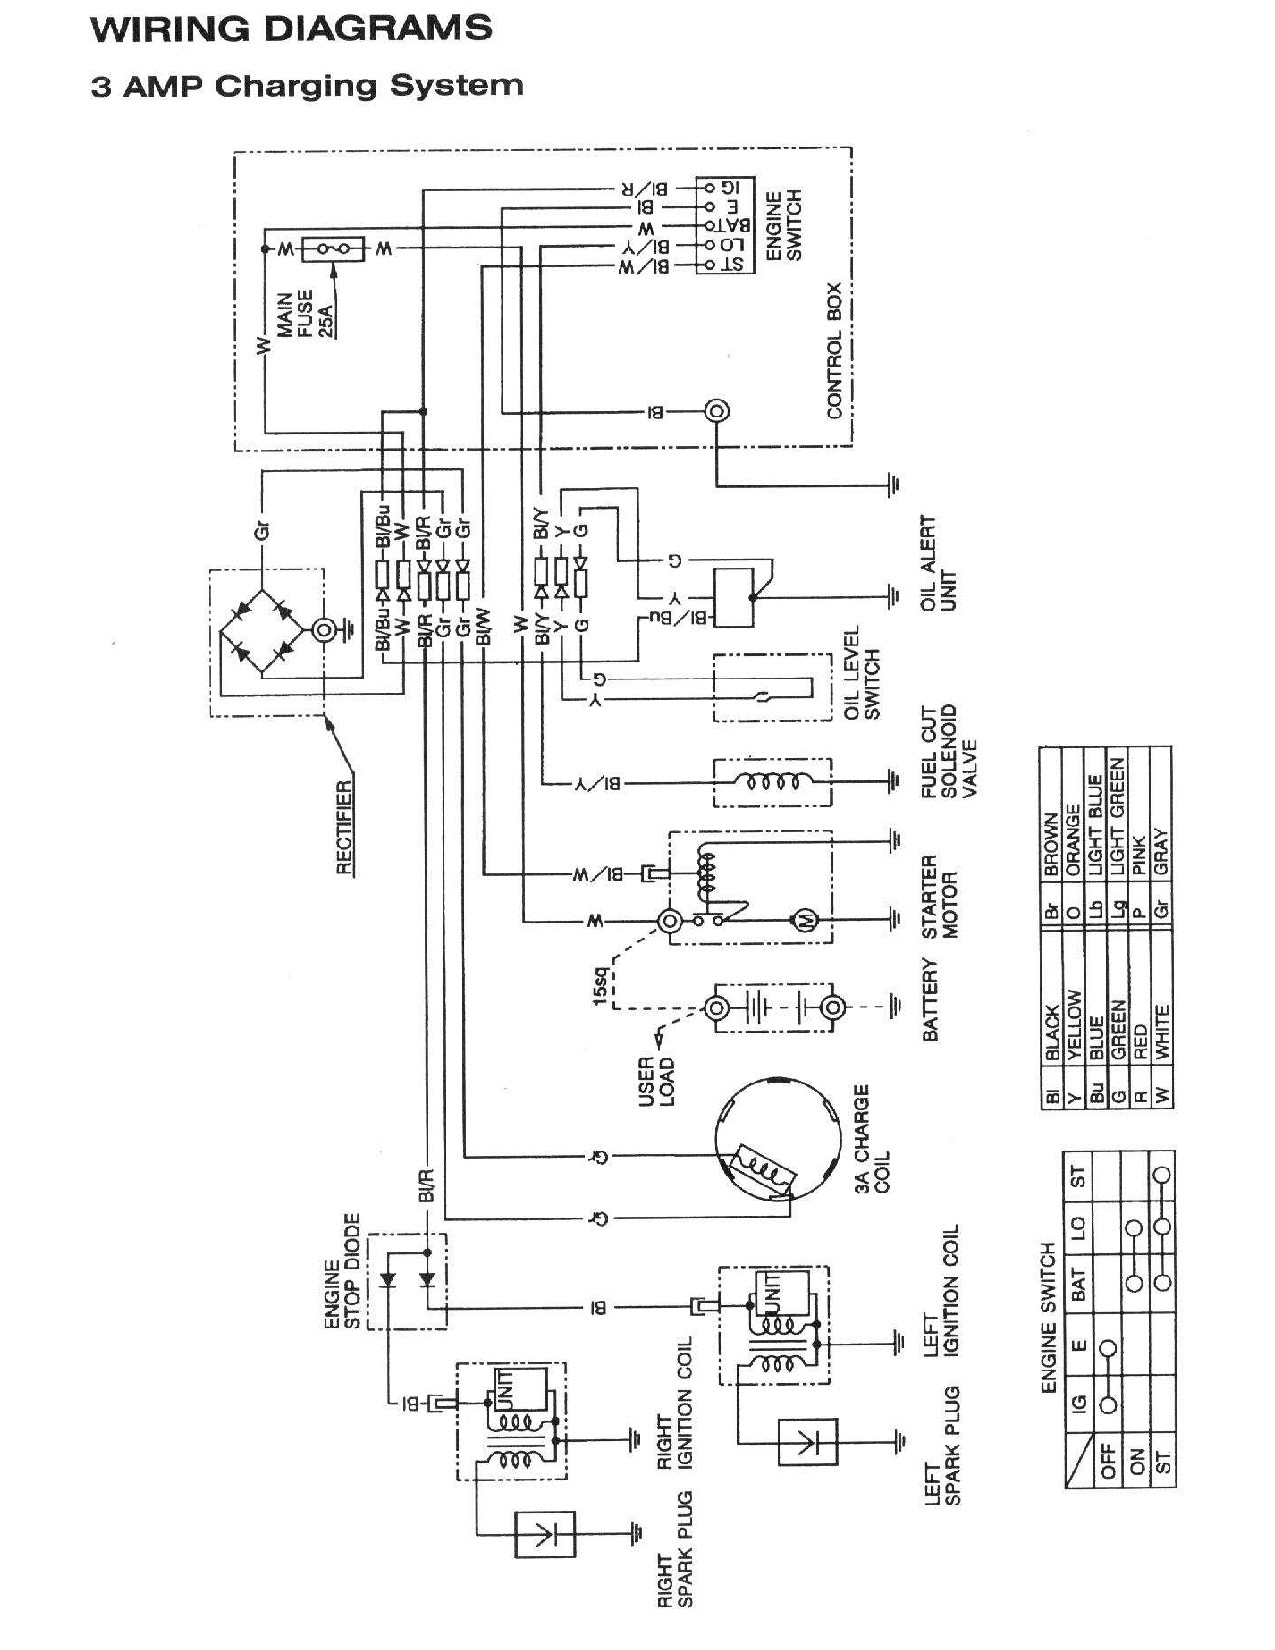 Dell Optiplex Gx620 Wiring Diagram Free Download • Oasis-dl.co